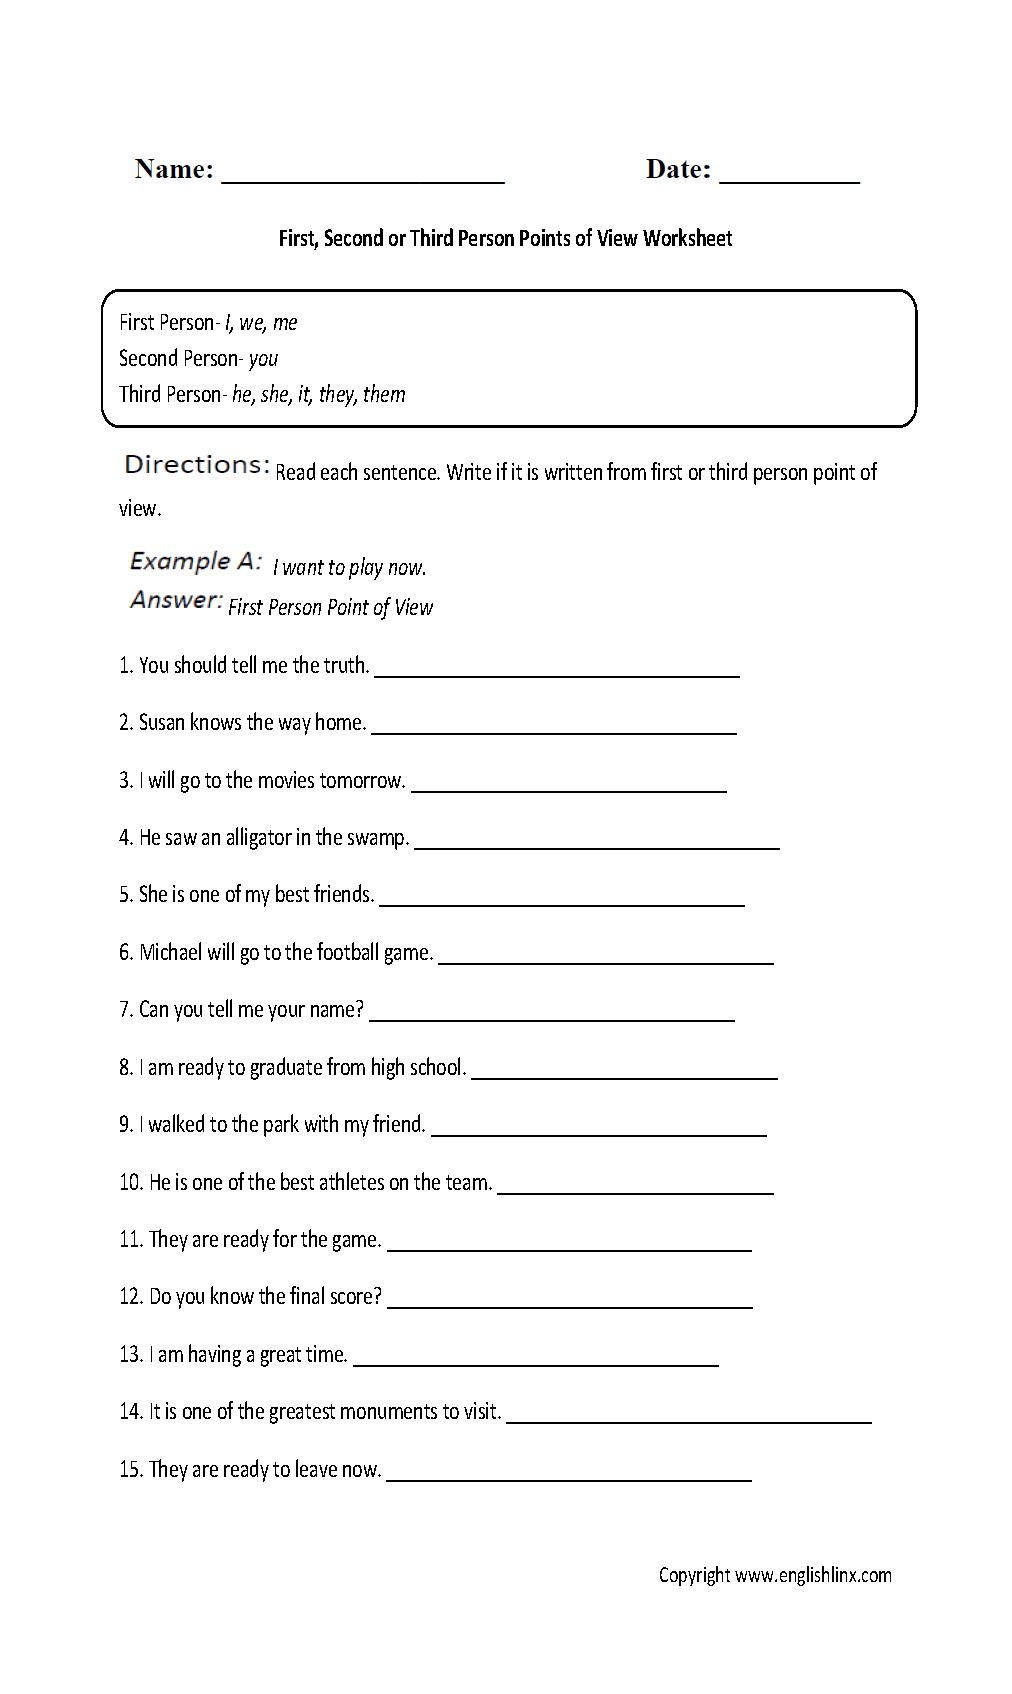 Weirdmailus  Unique Englishlinxcom  Point Of View Worksheets With Interesting Point Of View Worksheet With Breathtaking Blank Periodic Table Worksheet Also Squid Dissection Worksheet Answers In Addition Quadratic Formula Word Problems Worksheet Answers And Matter In Motion Worksheet As Well As Houghton Mifflin Math Grade  Worksheets Additionally Box And Whisker Plots Worksheets From Englishlinxcom With Weirdmailus  Interesting Englishlinxcom  Point Of View Worksheets With Breathtaking Point Of View Worksheet And Unique Blank Periodic Table Worksheet Also Squid Dissection Worksheet Answers In Addition Quadratic Formula Word Problems Worksheet Answers From Englishlinxcom